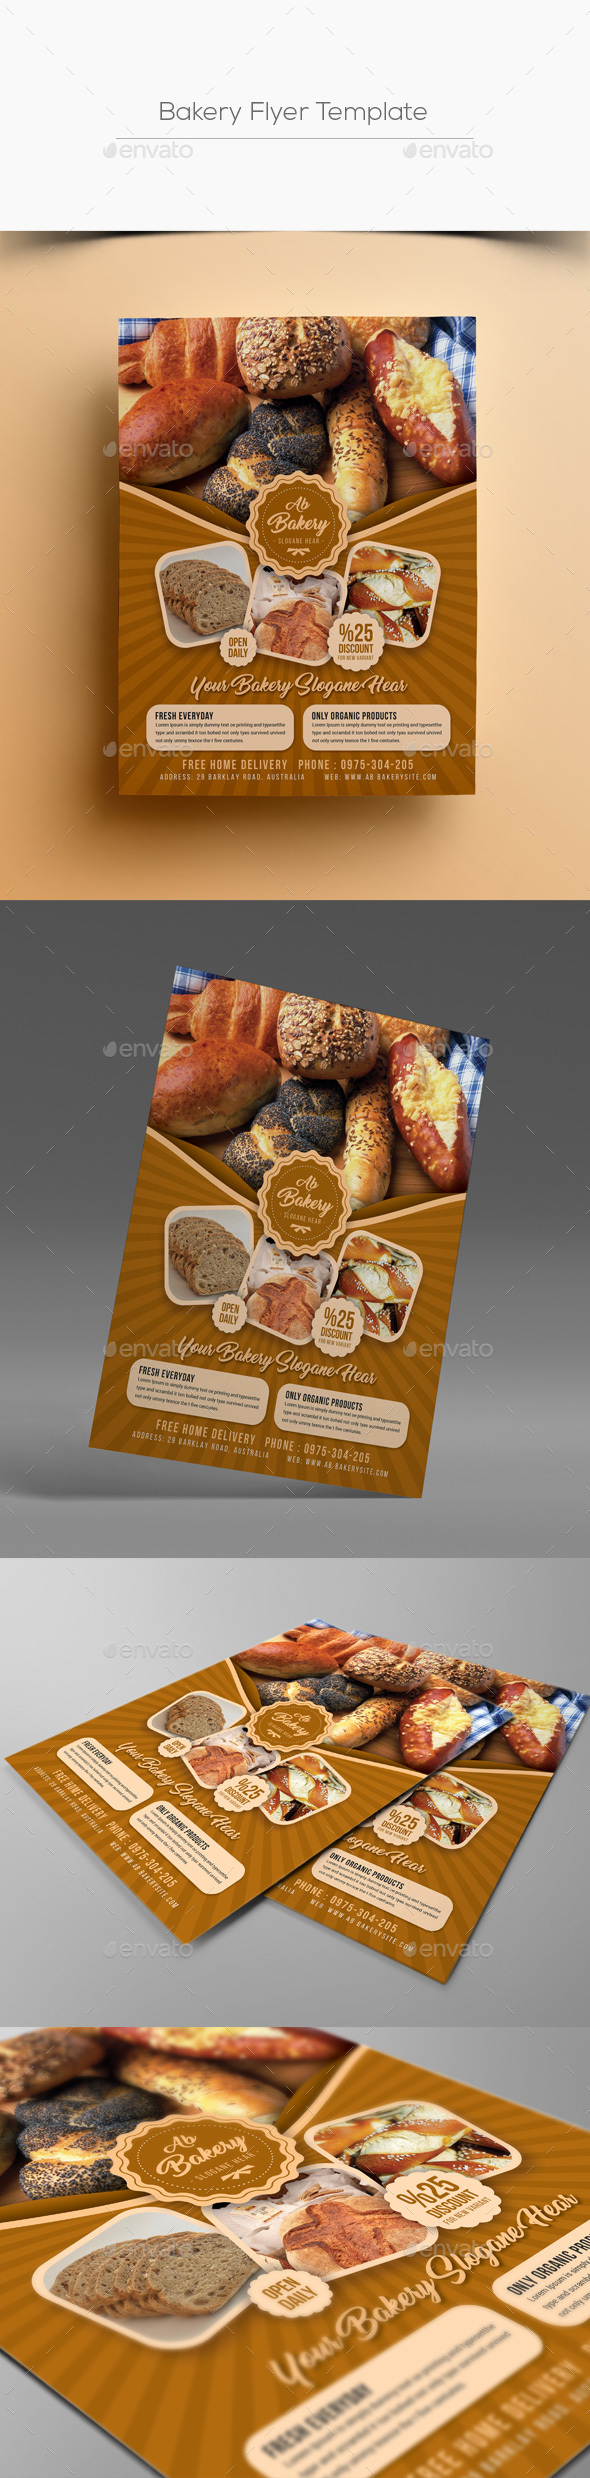 Bakery Flyer Template - Restaurant Flyers